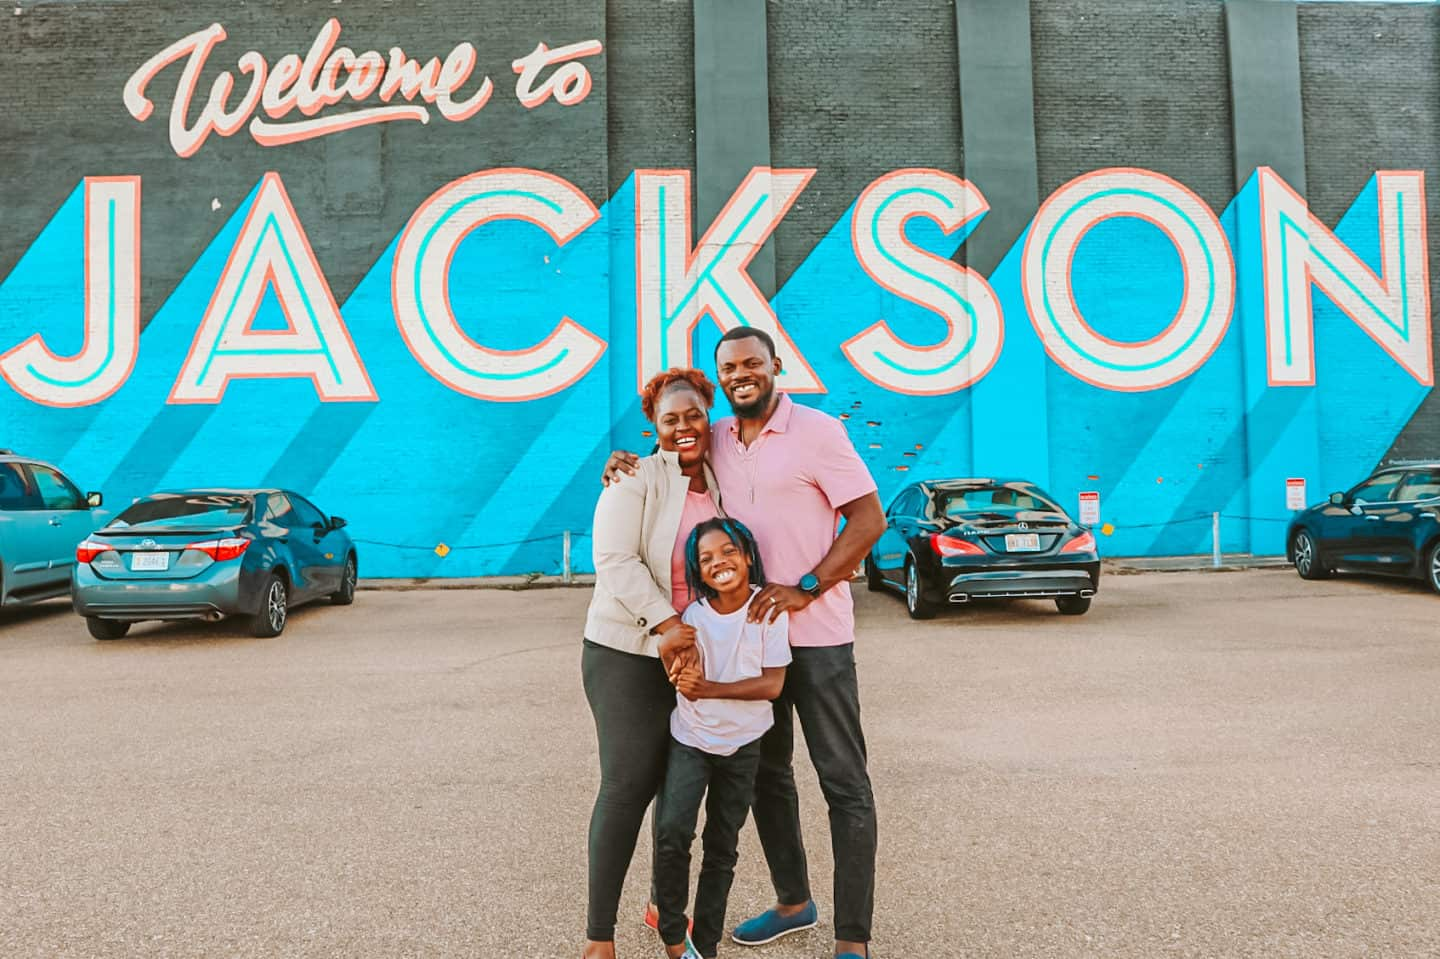 26 Fun Things To Do In Jackson, Mississippi with Kids